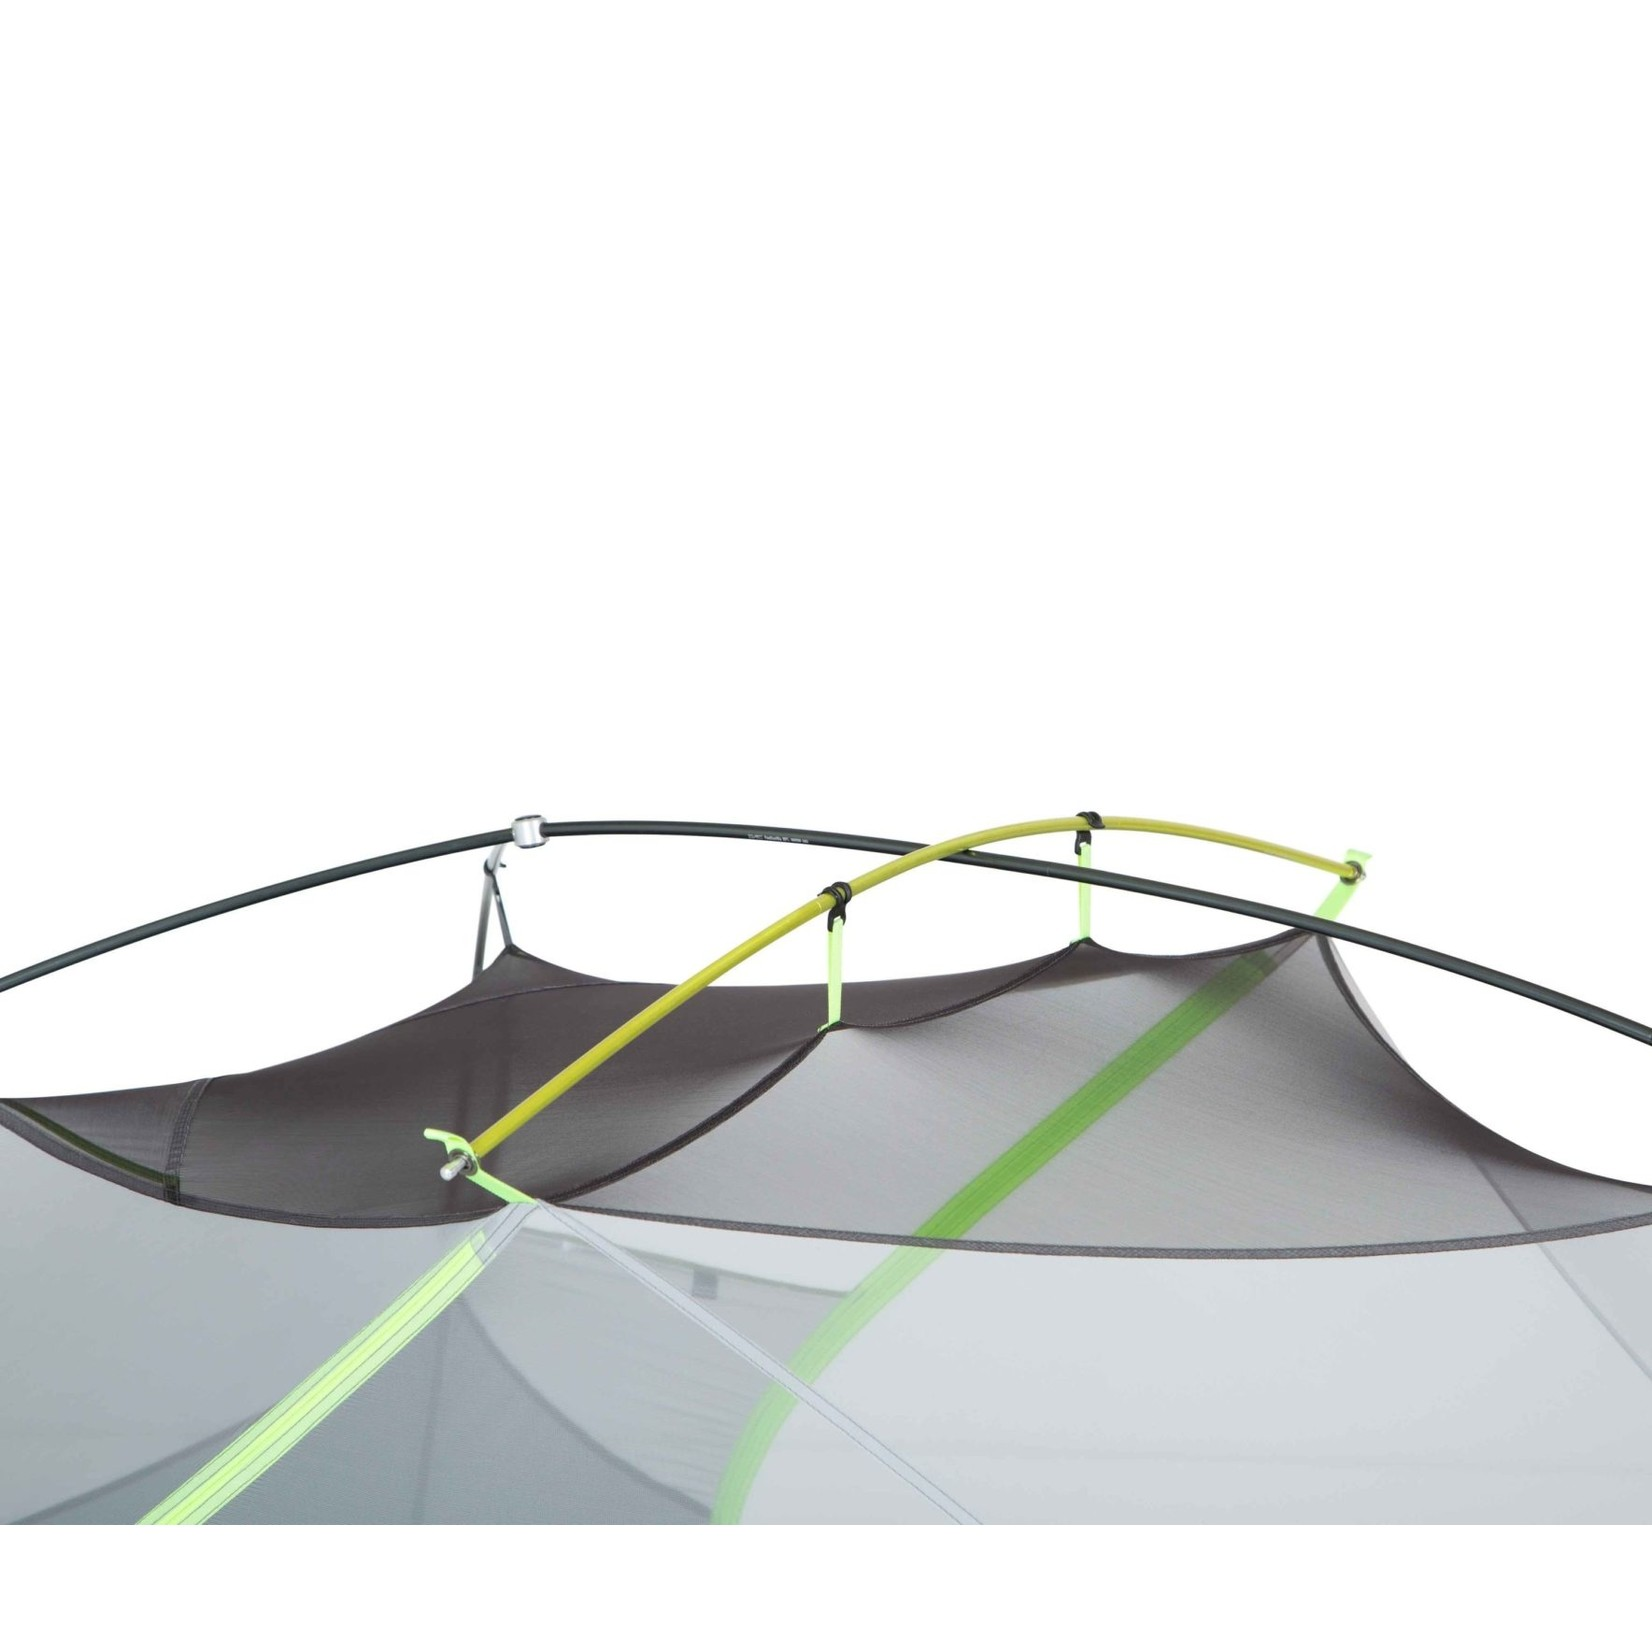 NEMO Firefly™ Backpacking Tent